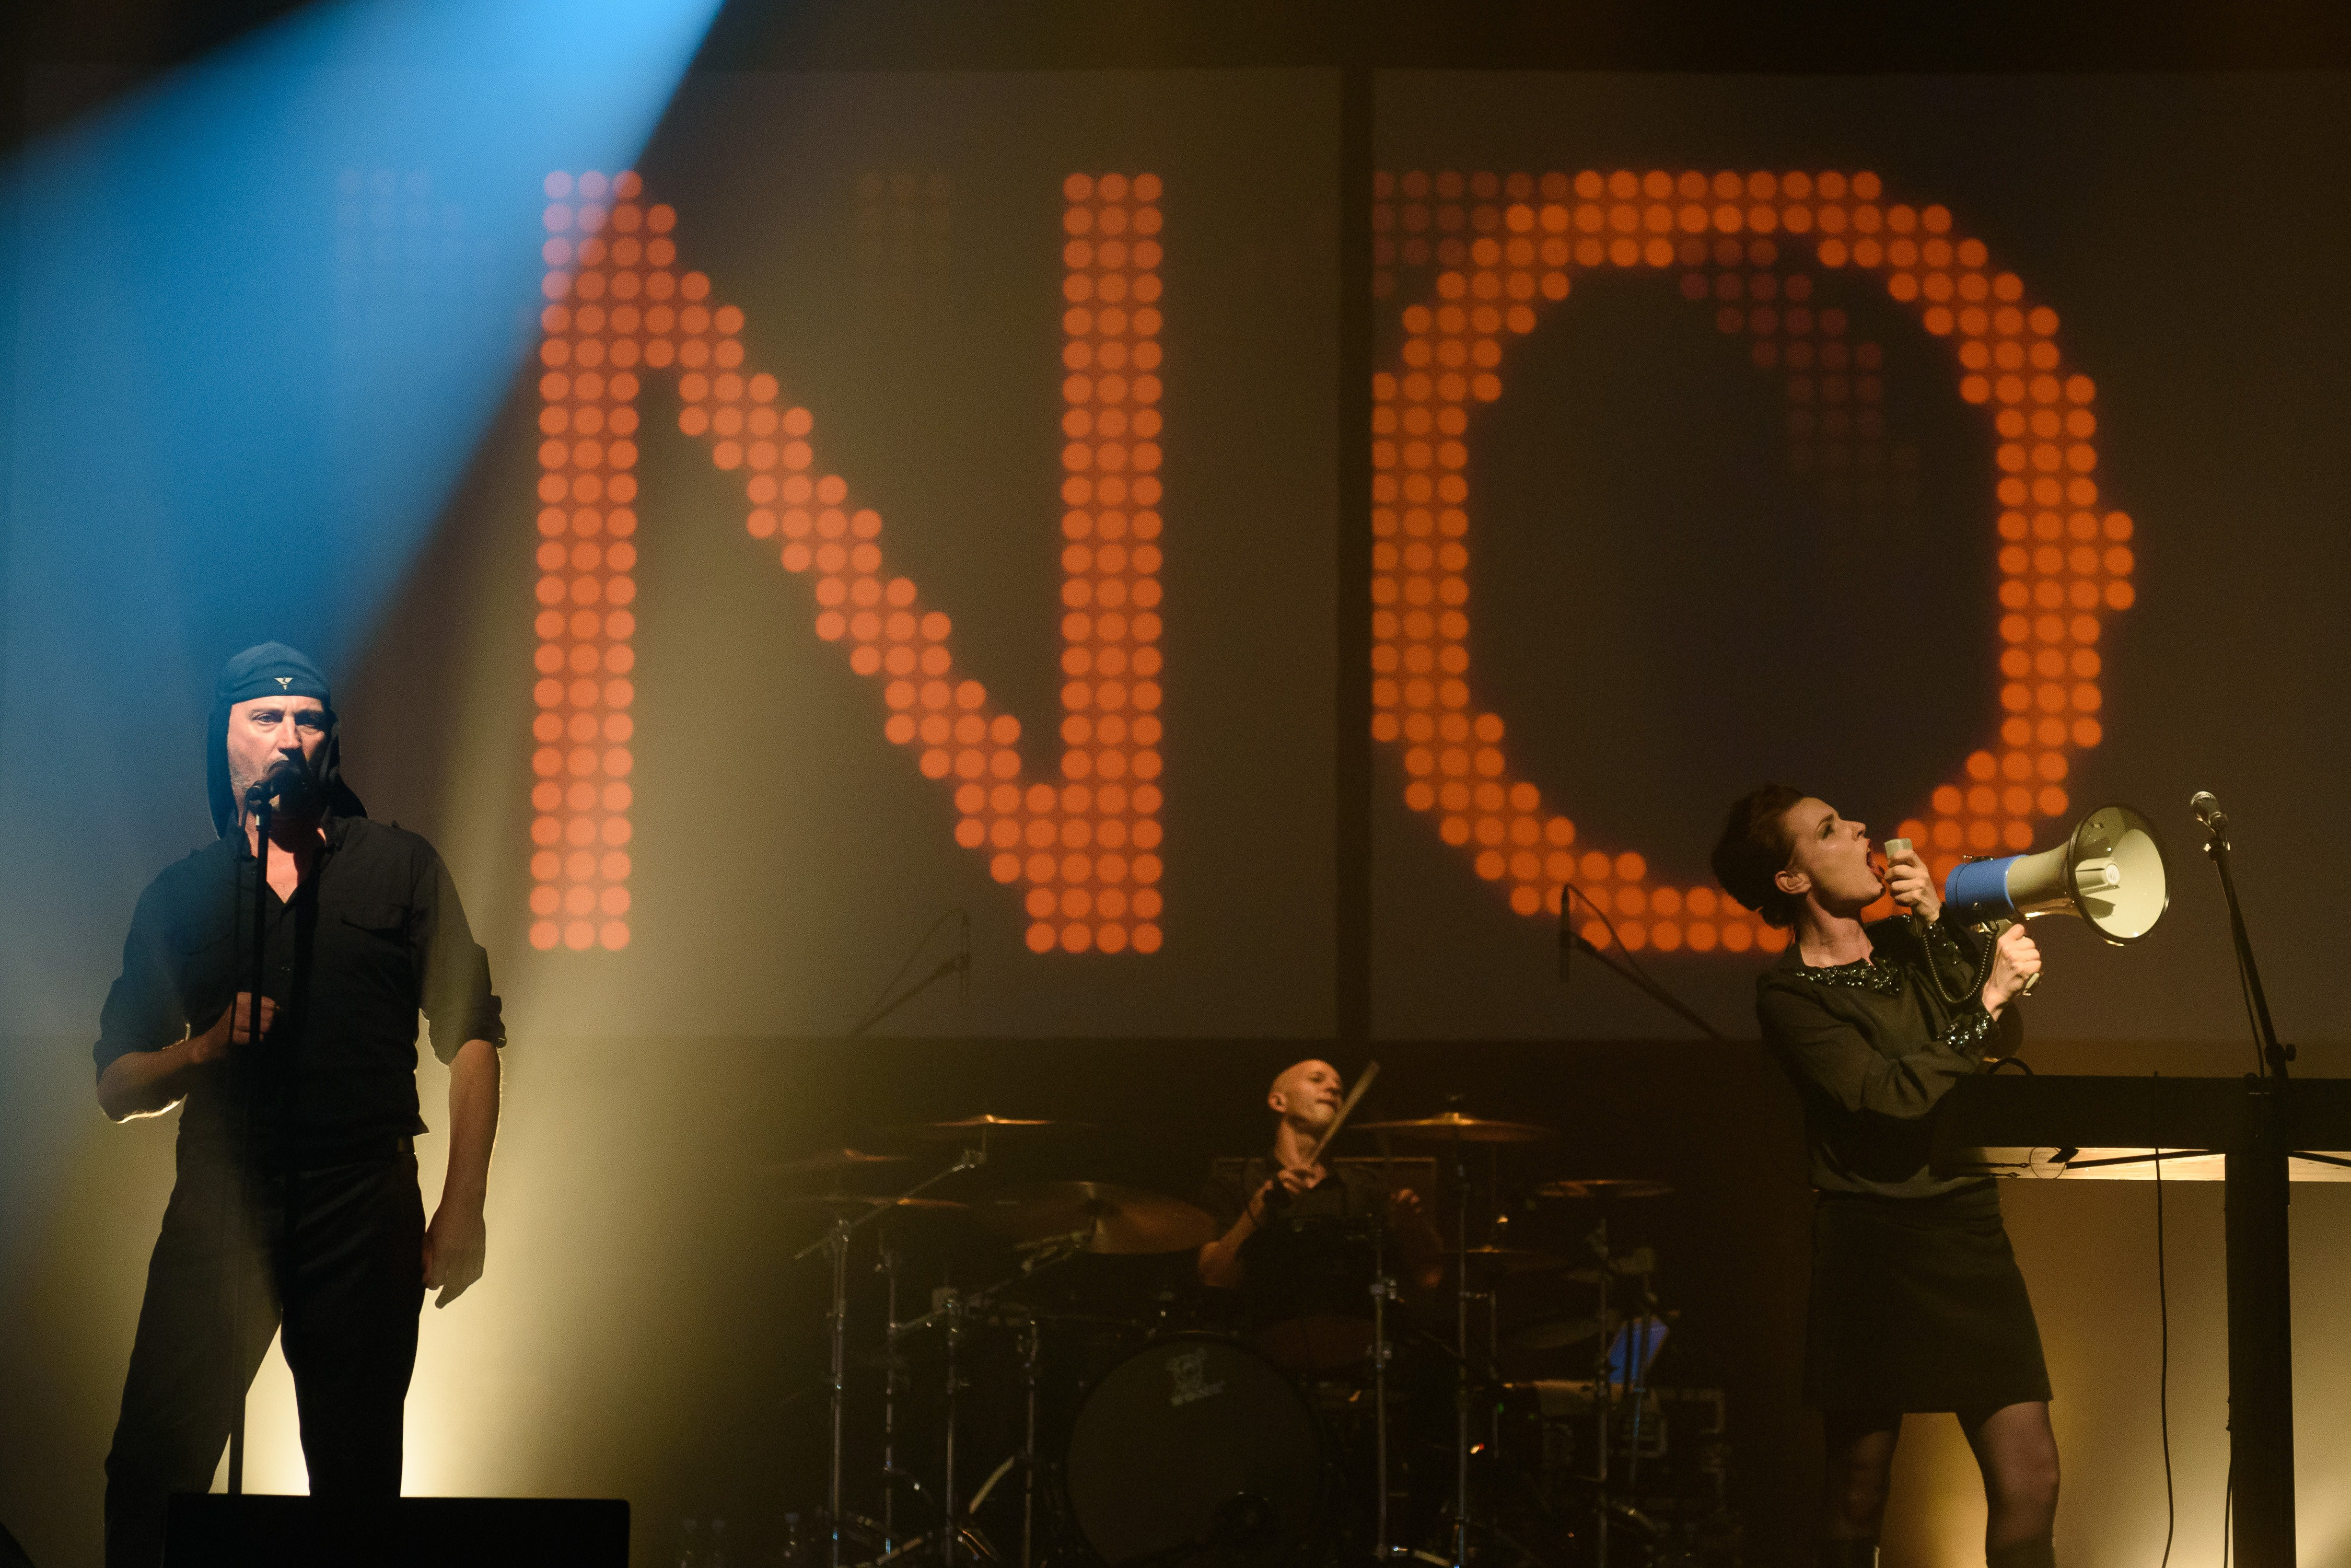 Slovenian music band Laibach performs live in Trbovlje on July 4, 2015.